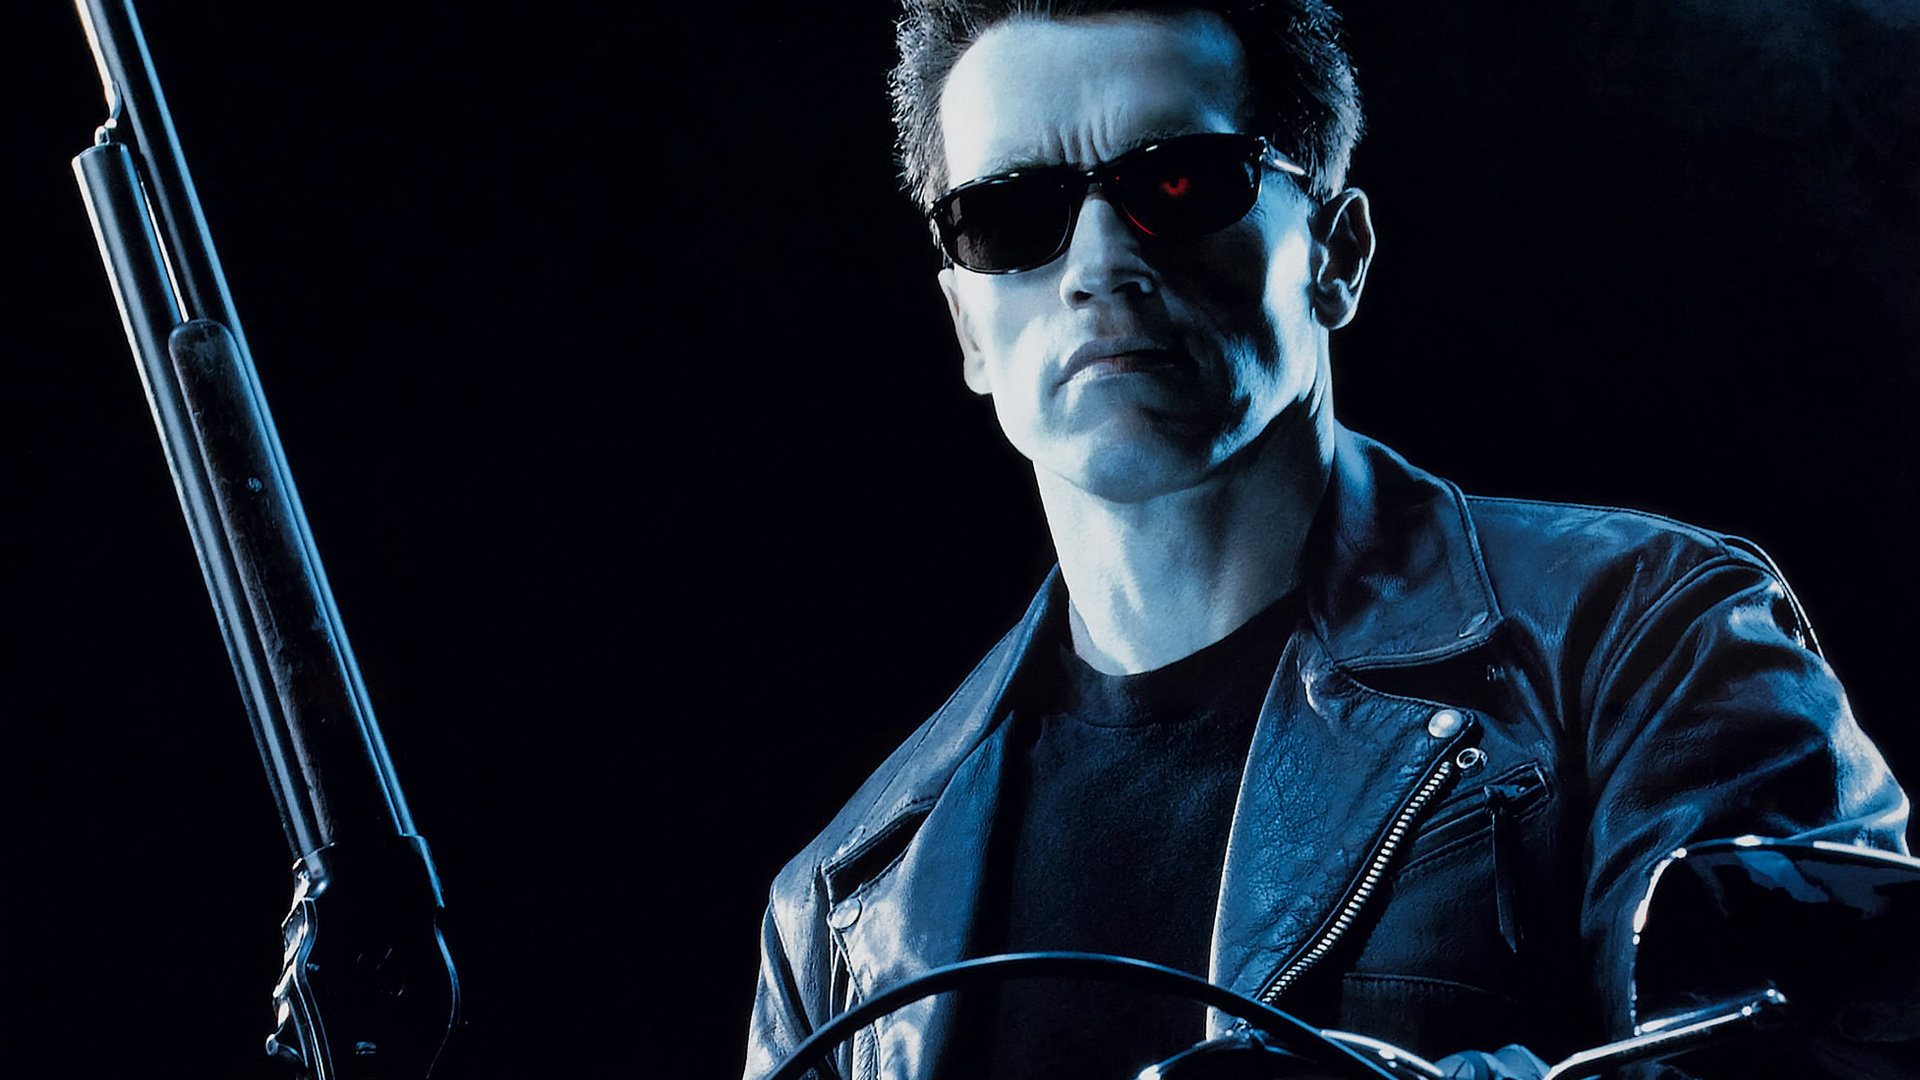 Terminator 2 Judgment Day HD Wallpaper Background Image 1920x1080